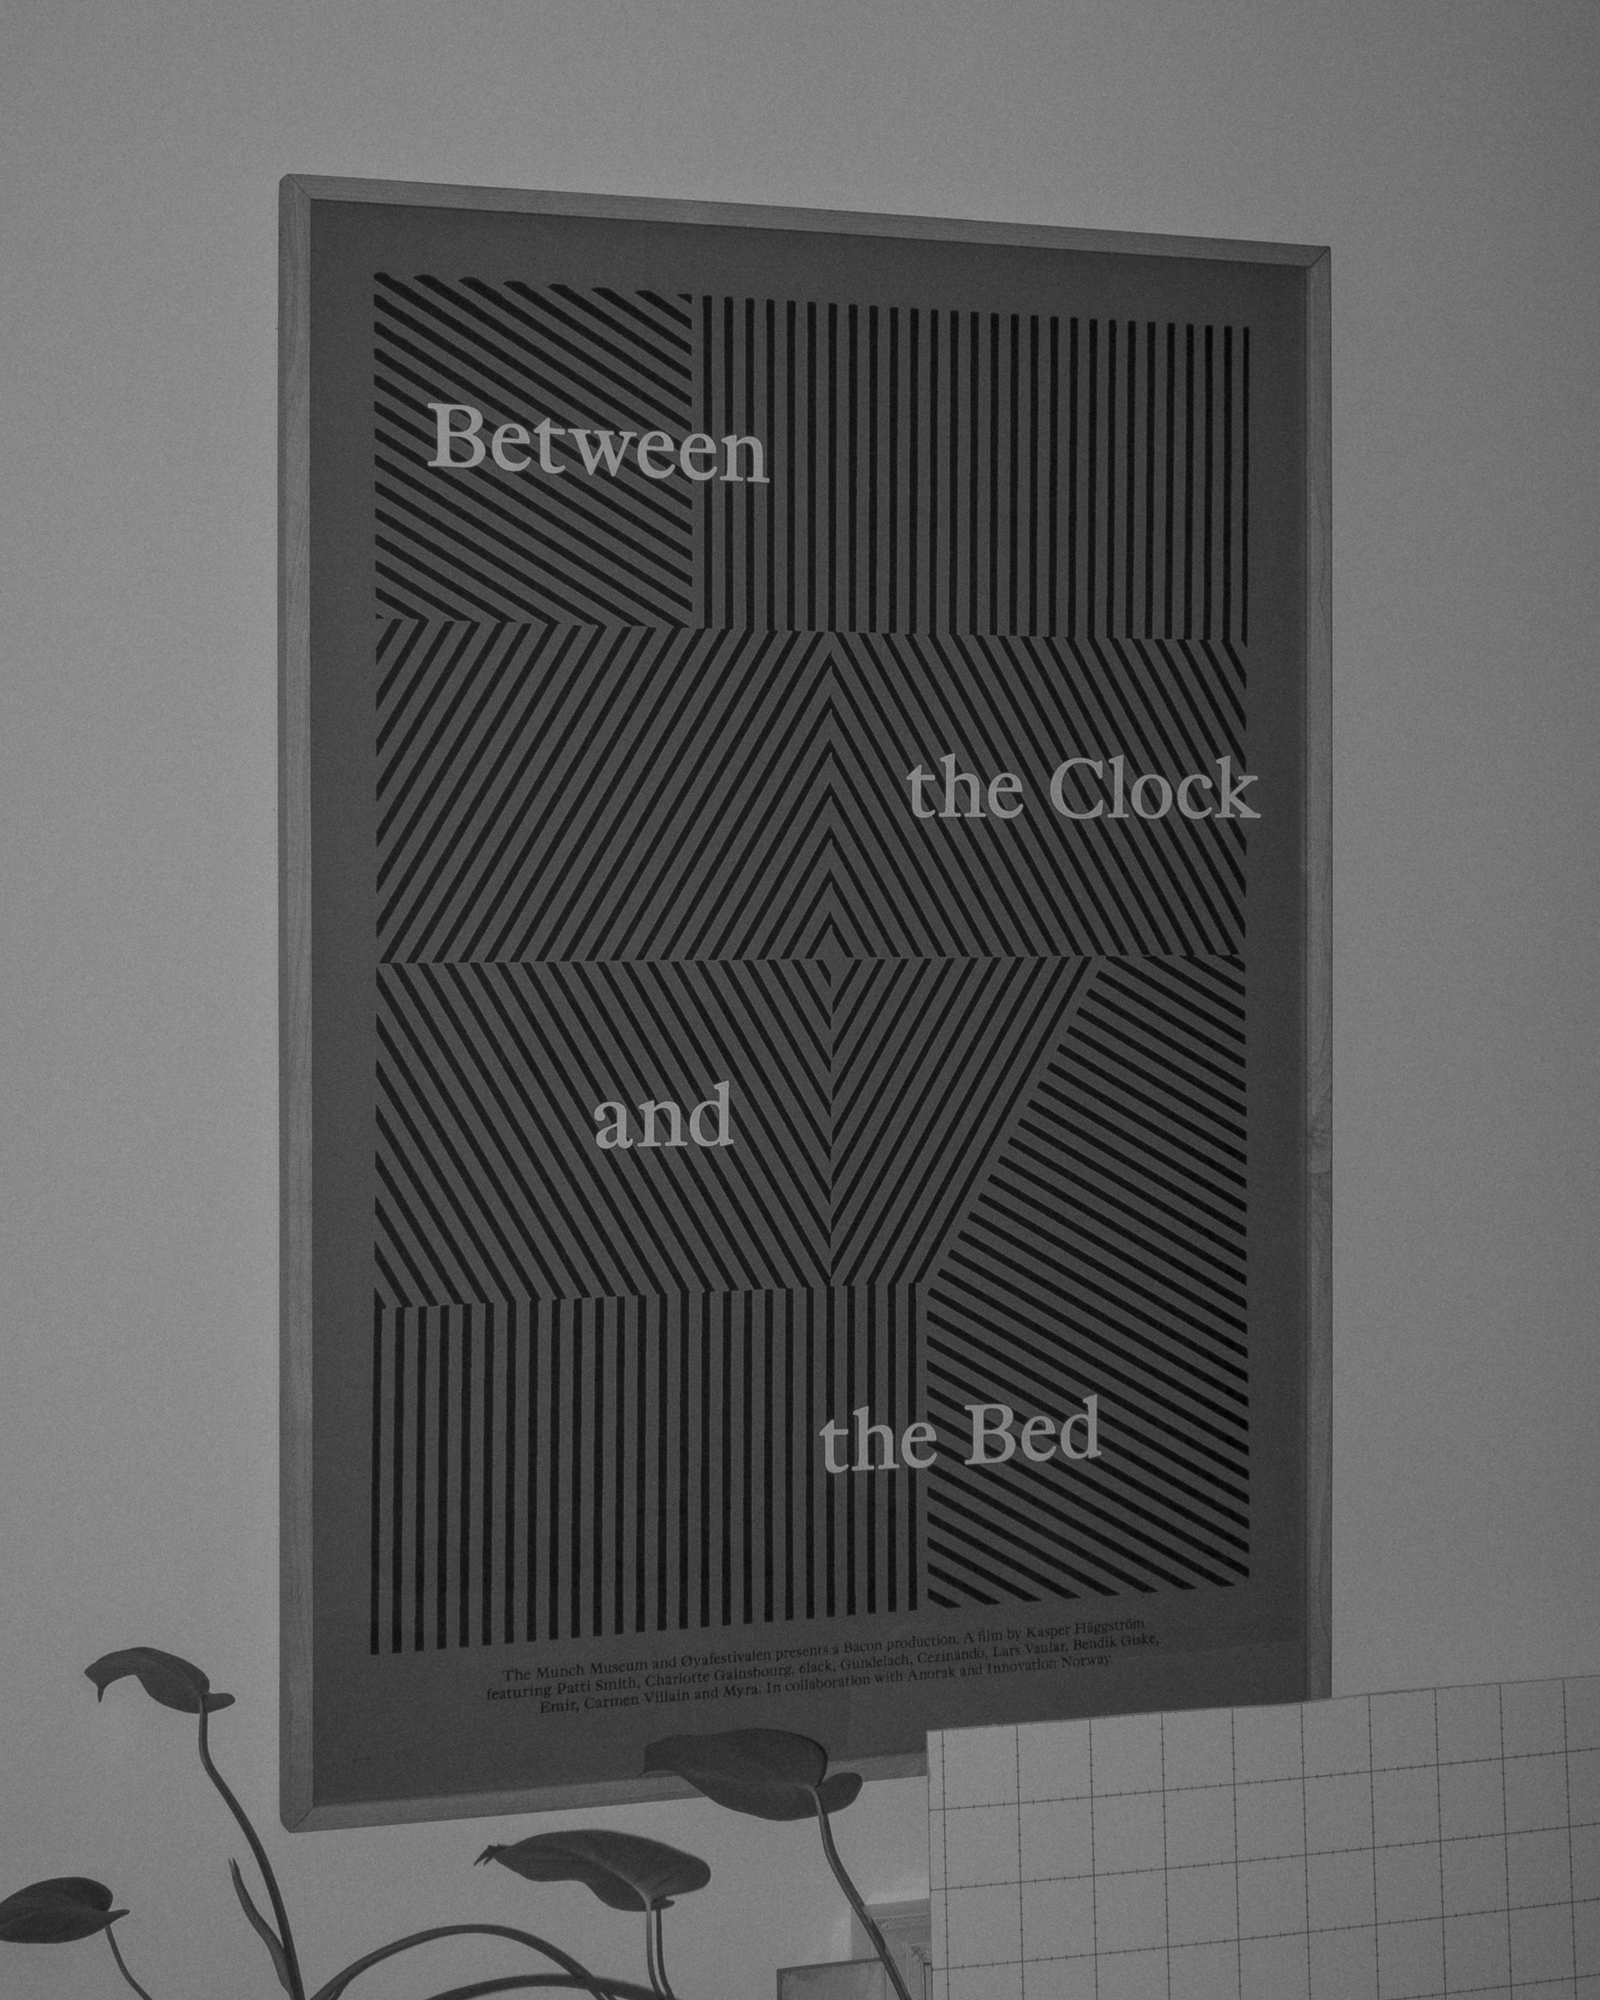 Between the Clock and the Bed poster